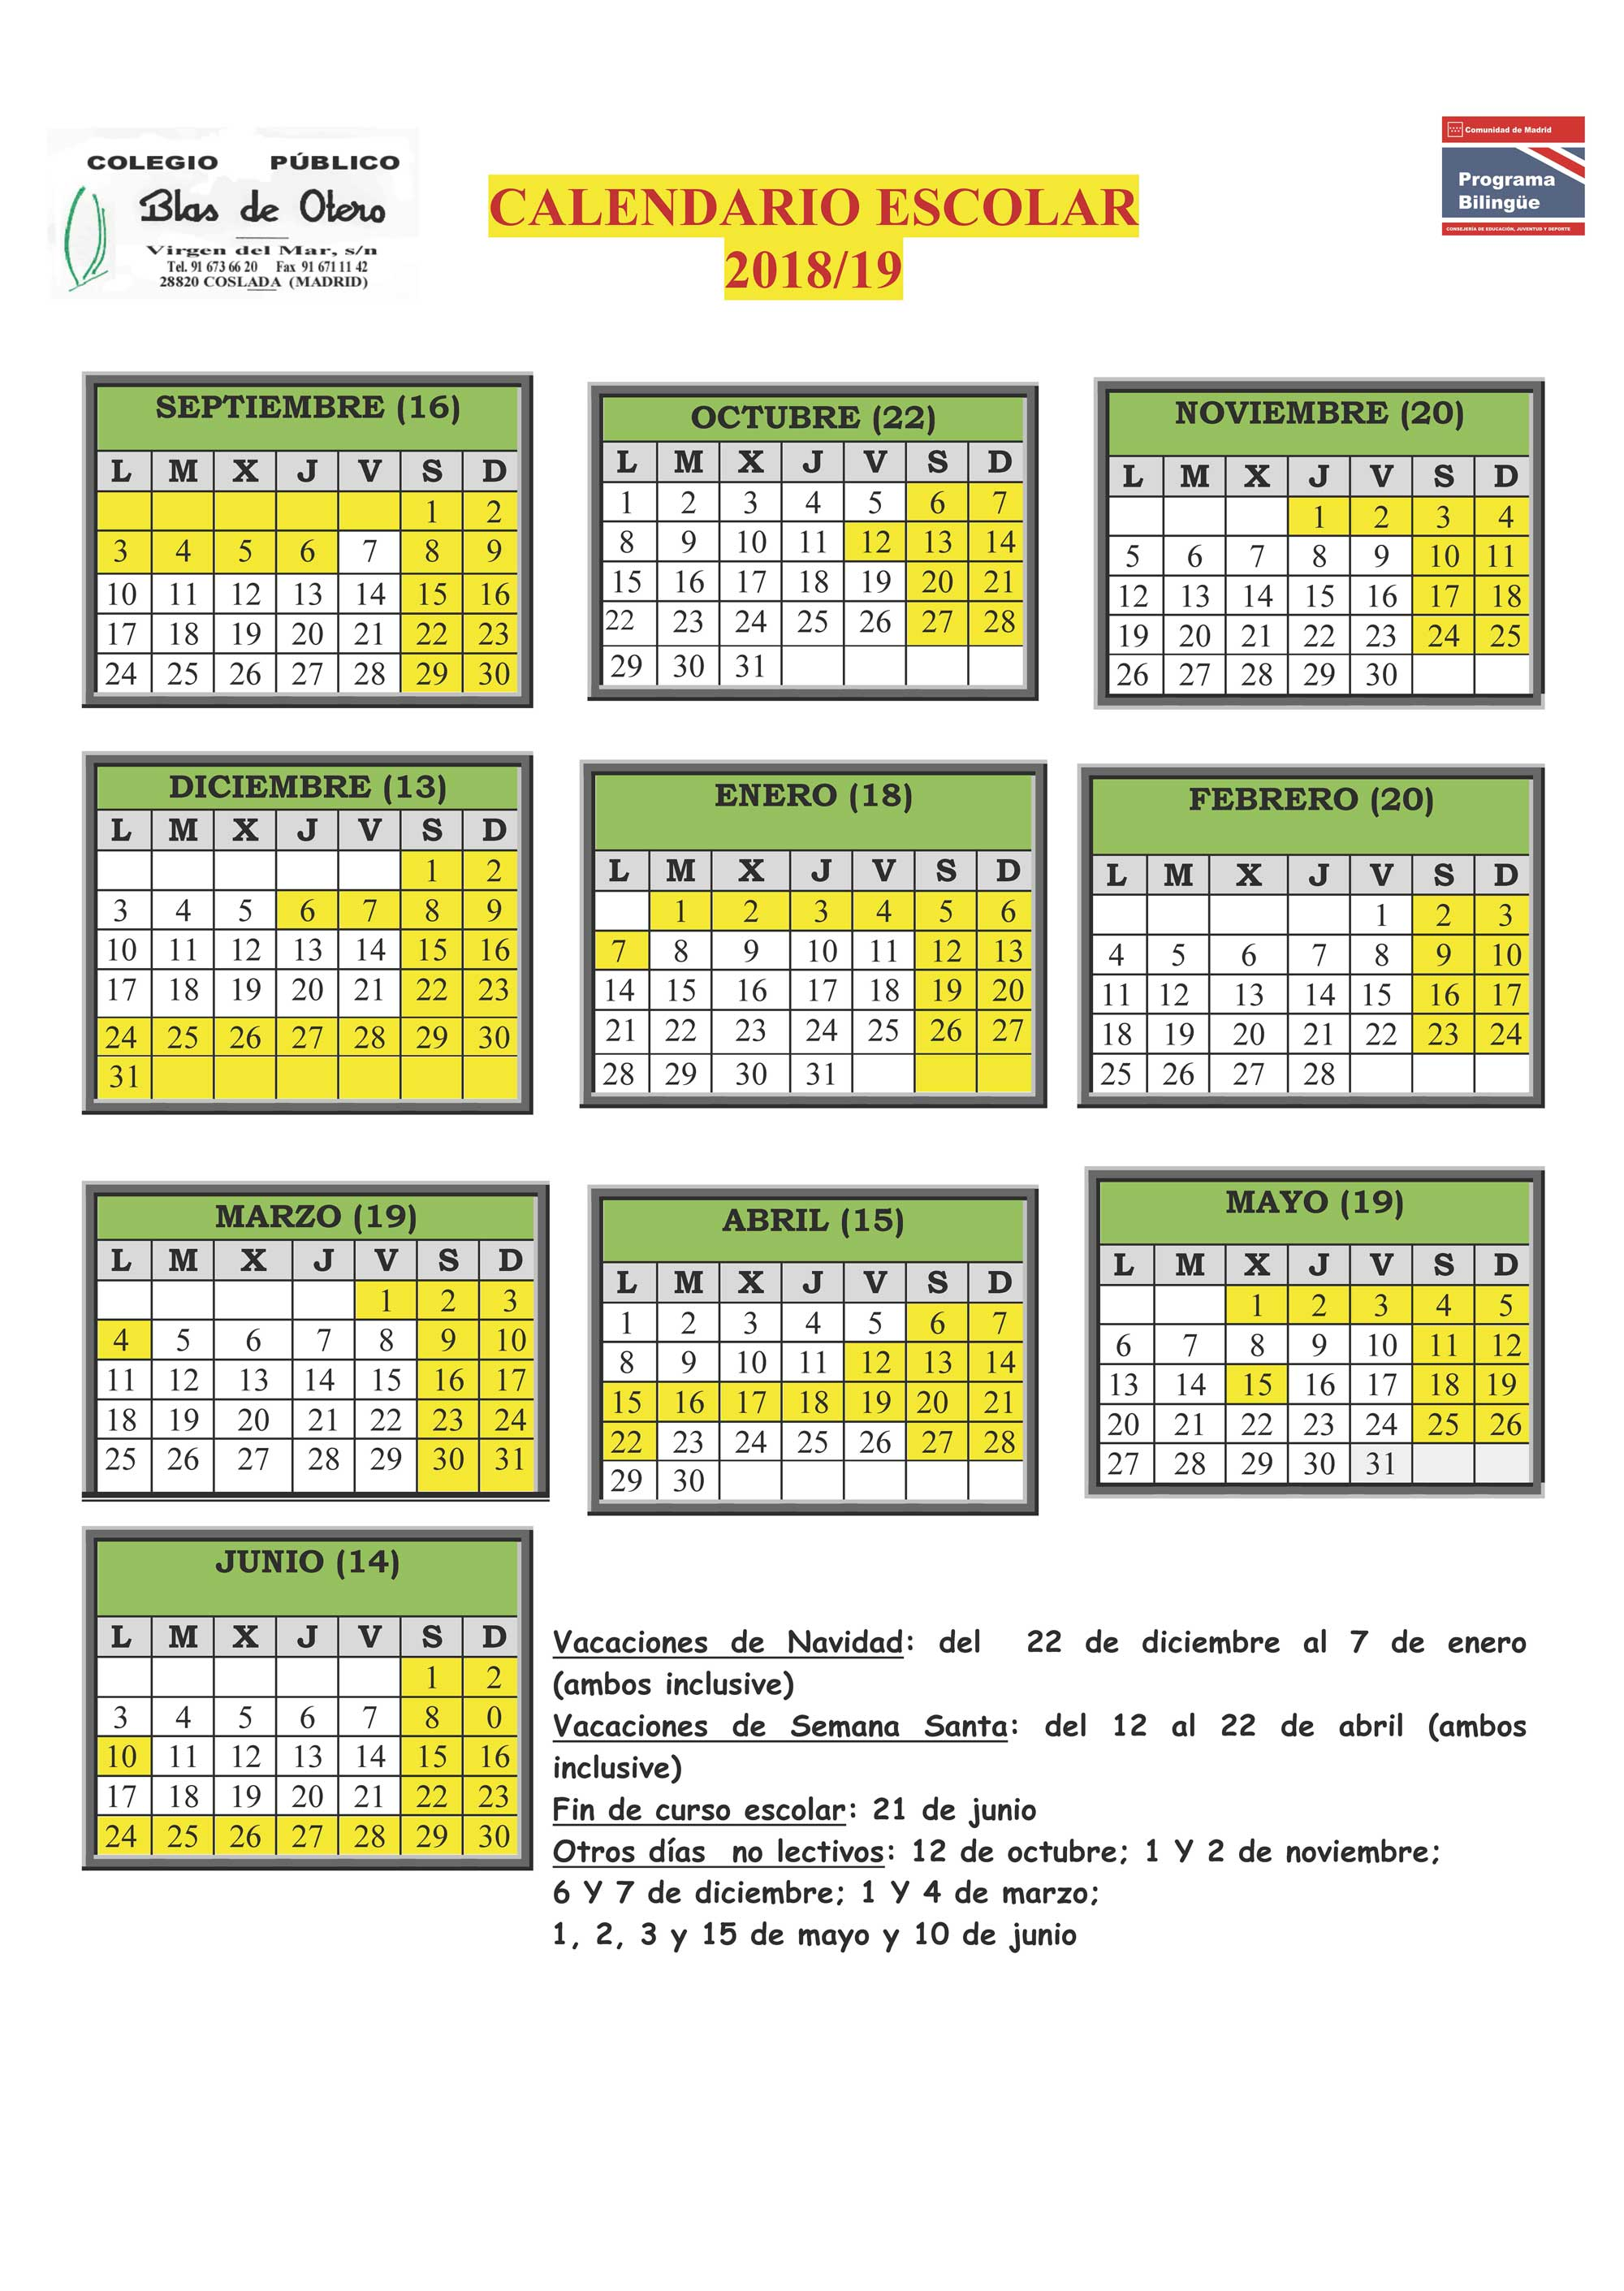 Calendario Escolar Madrid 2020 2019.Calendario Escolar 2018 2019 Cp Blas De Otero